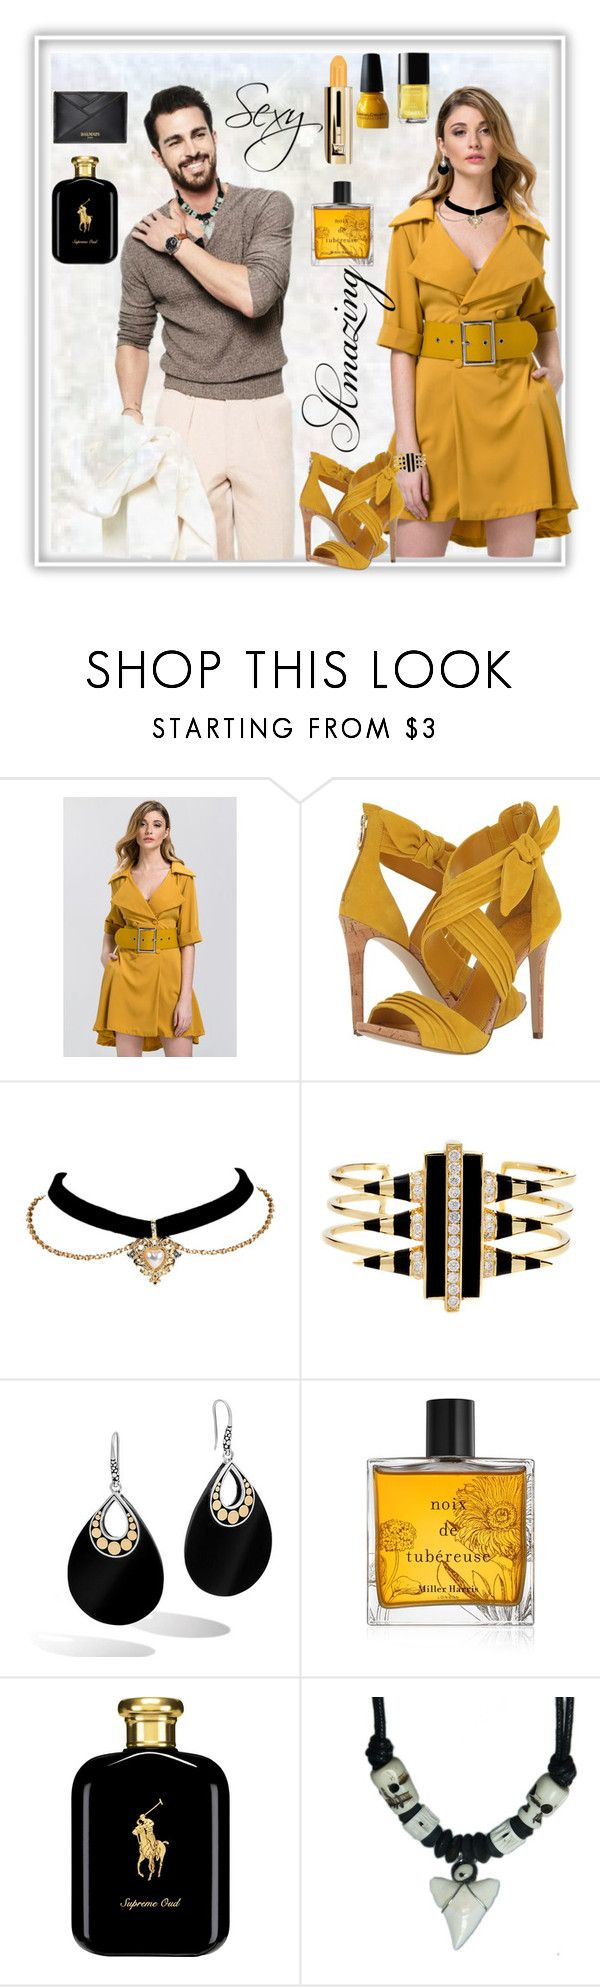 """Casual chic, classe"" by jaja8x8 ❤ liked on Polyvore featuring GUESS, Noir Jewelry, John Hardy, Miller Harris, Champion, Polo Ralph Lauren and Balmain"